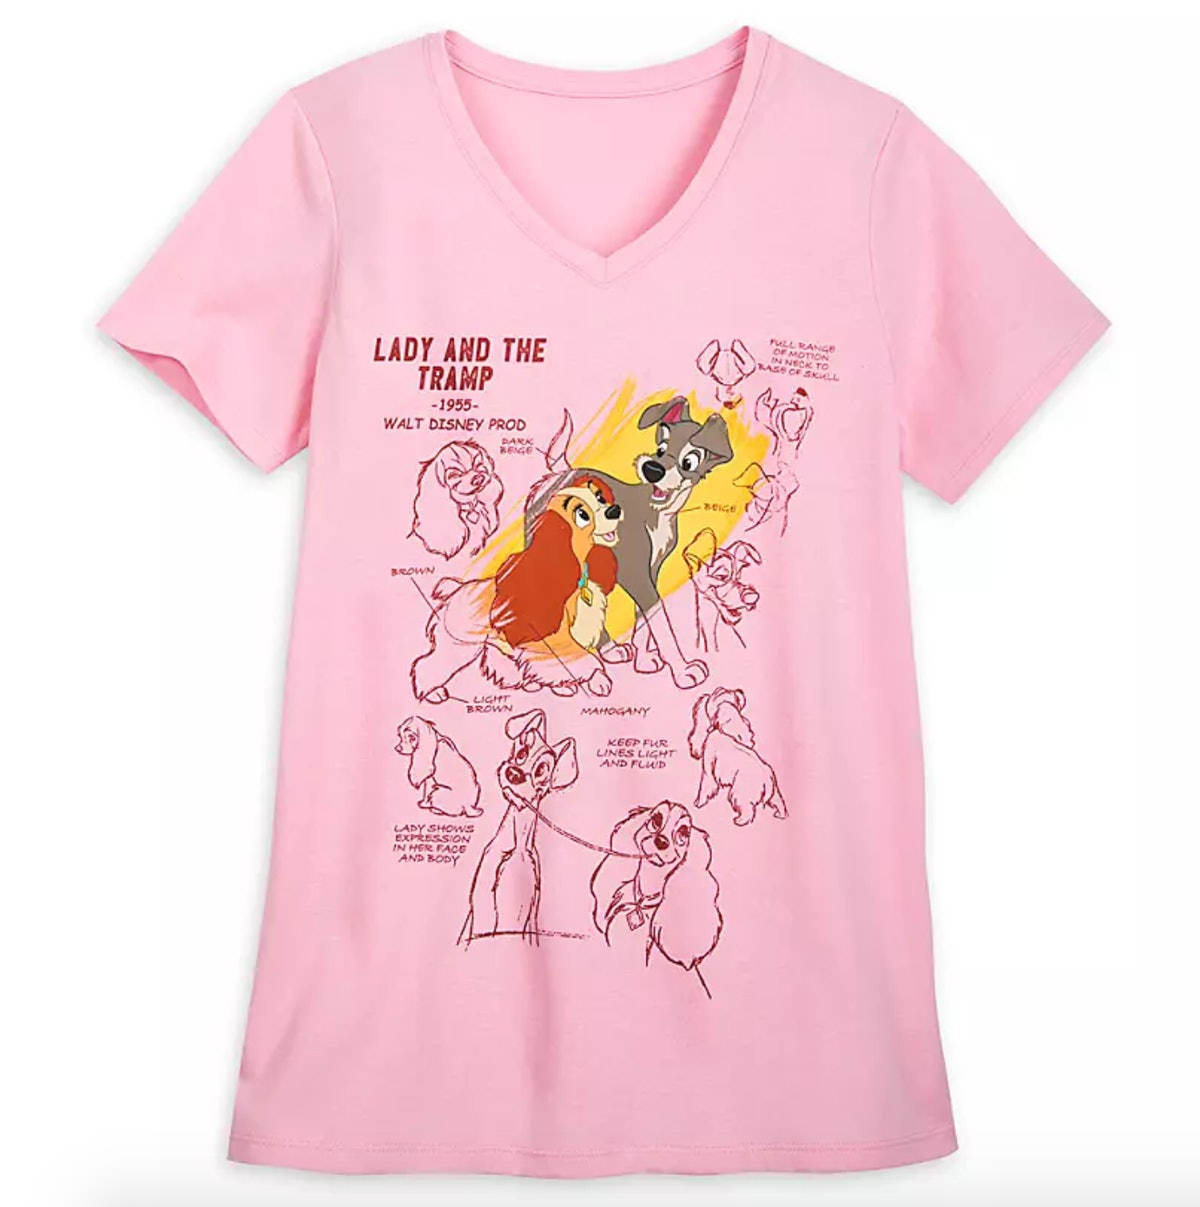 Lady and the Tramp Fashion T-Shirt for Women – Ink & Paint